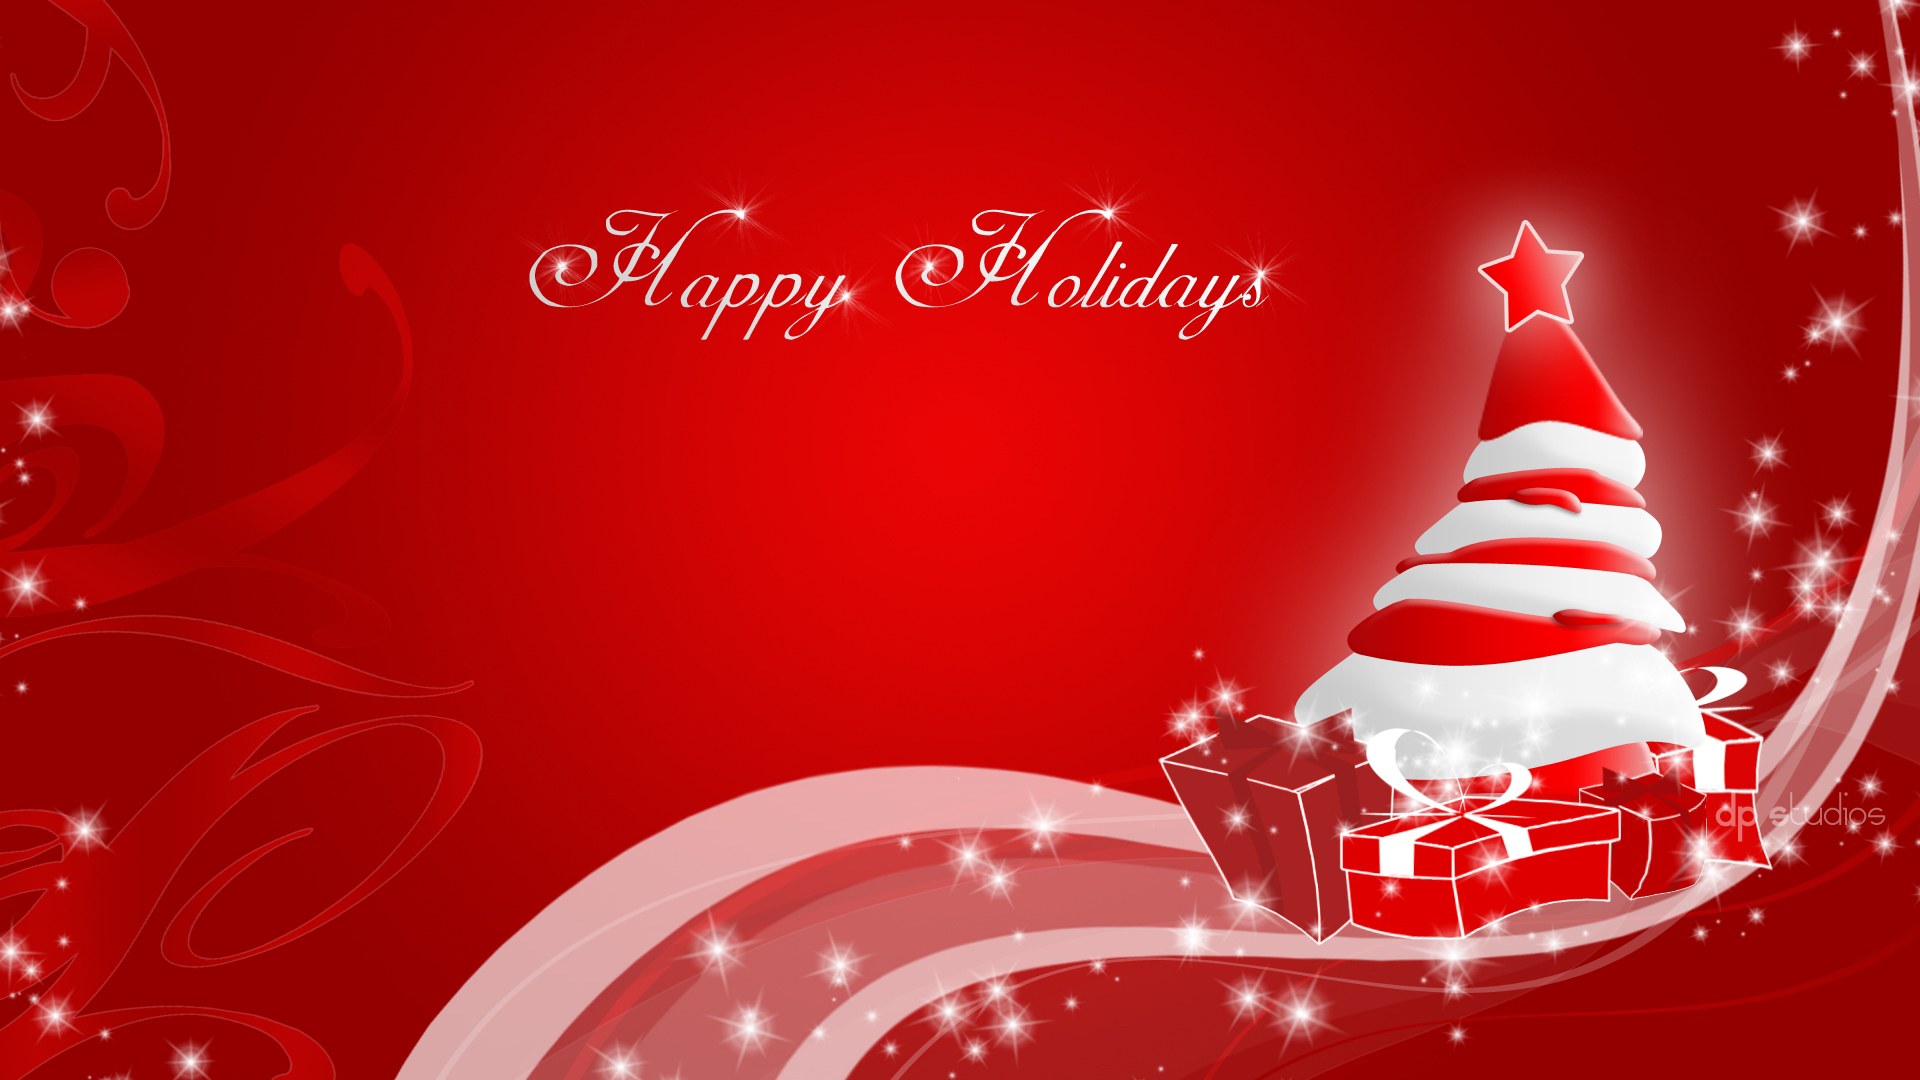 Happy-Holidays_2014.jpg